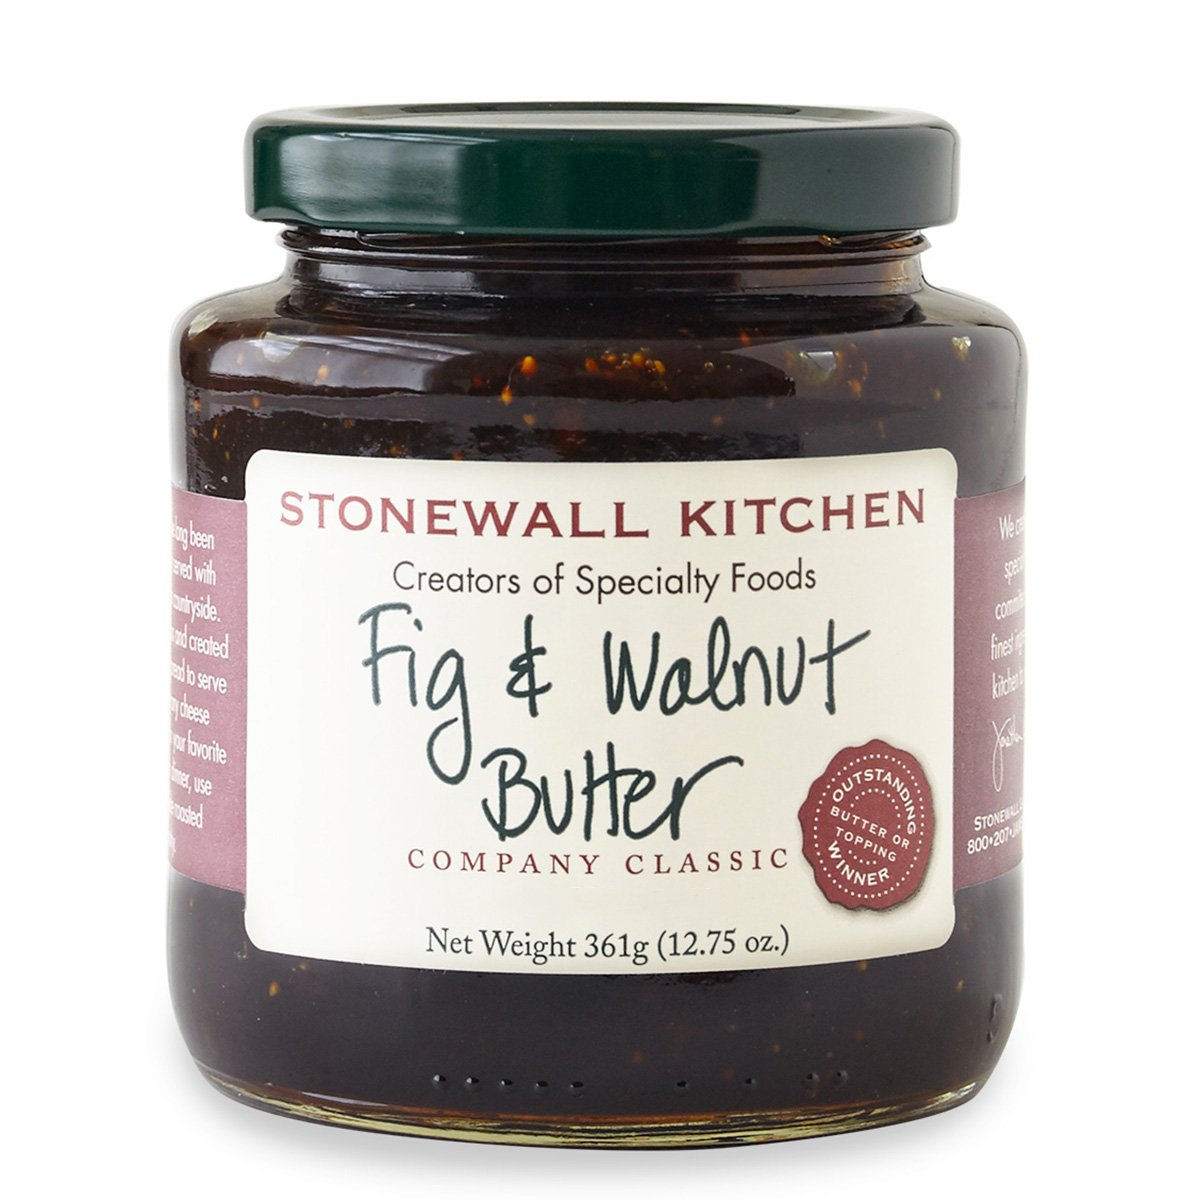 Stonewall Kitchen Butter, Fig and Walnut, 12.75